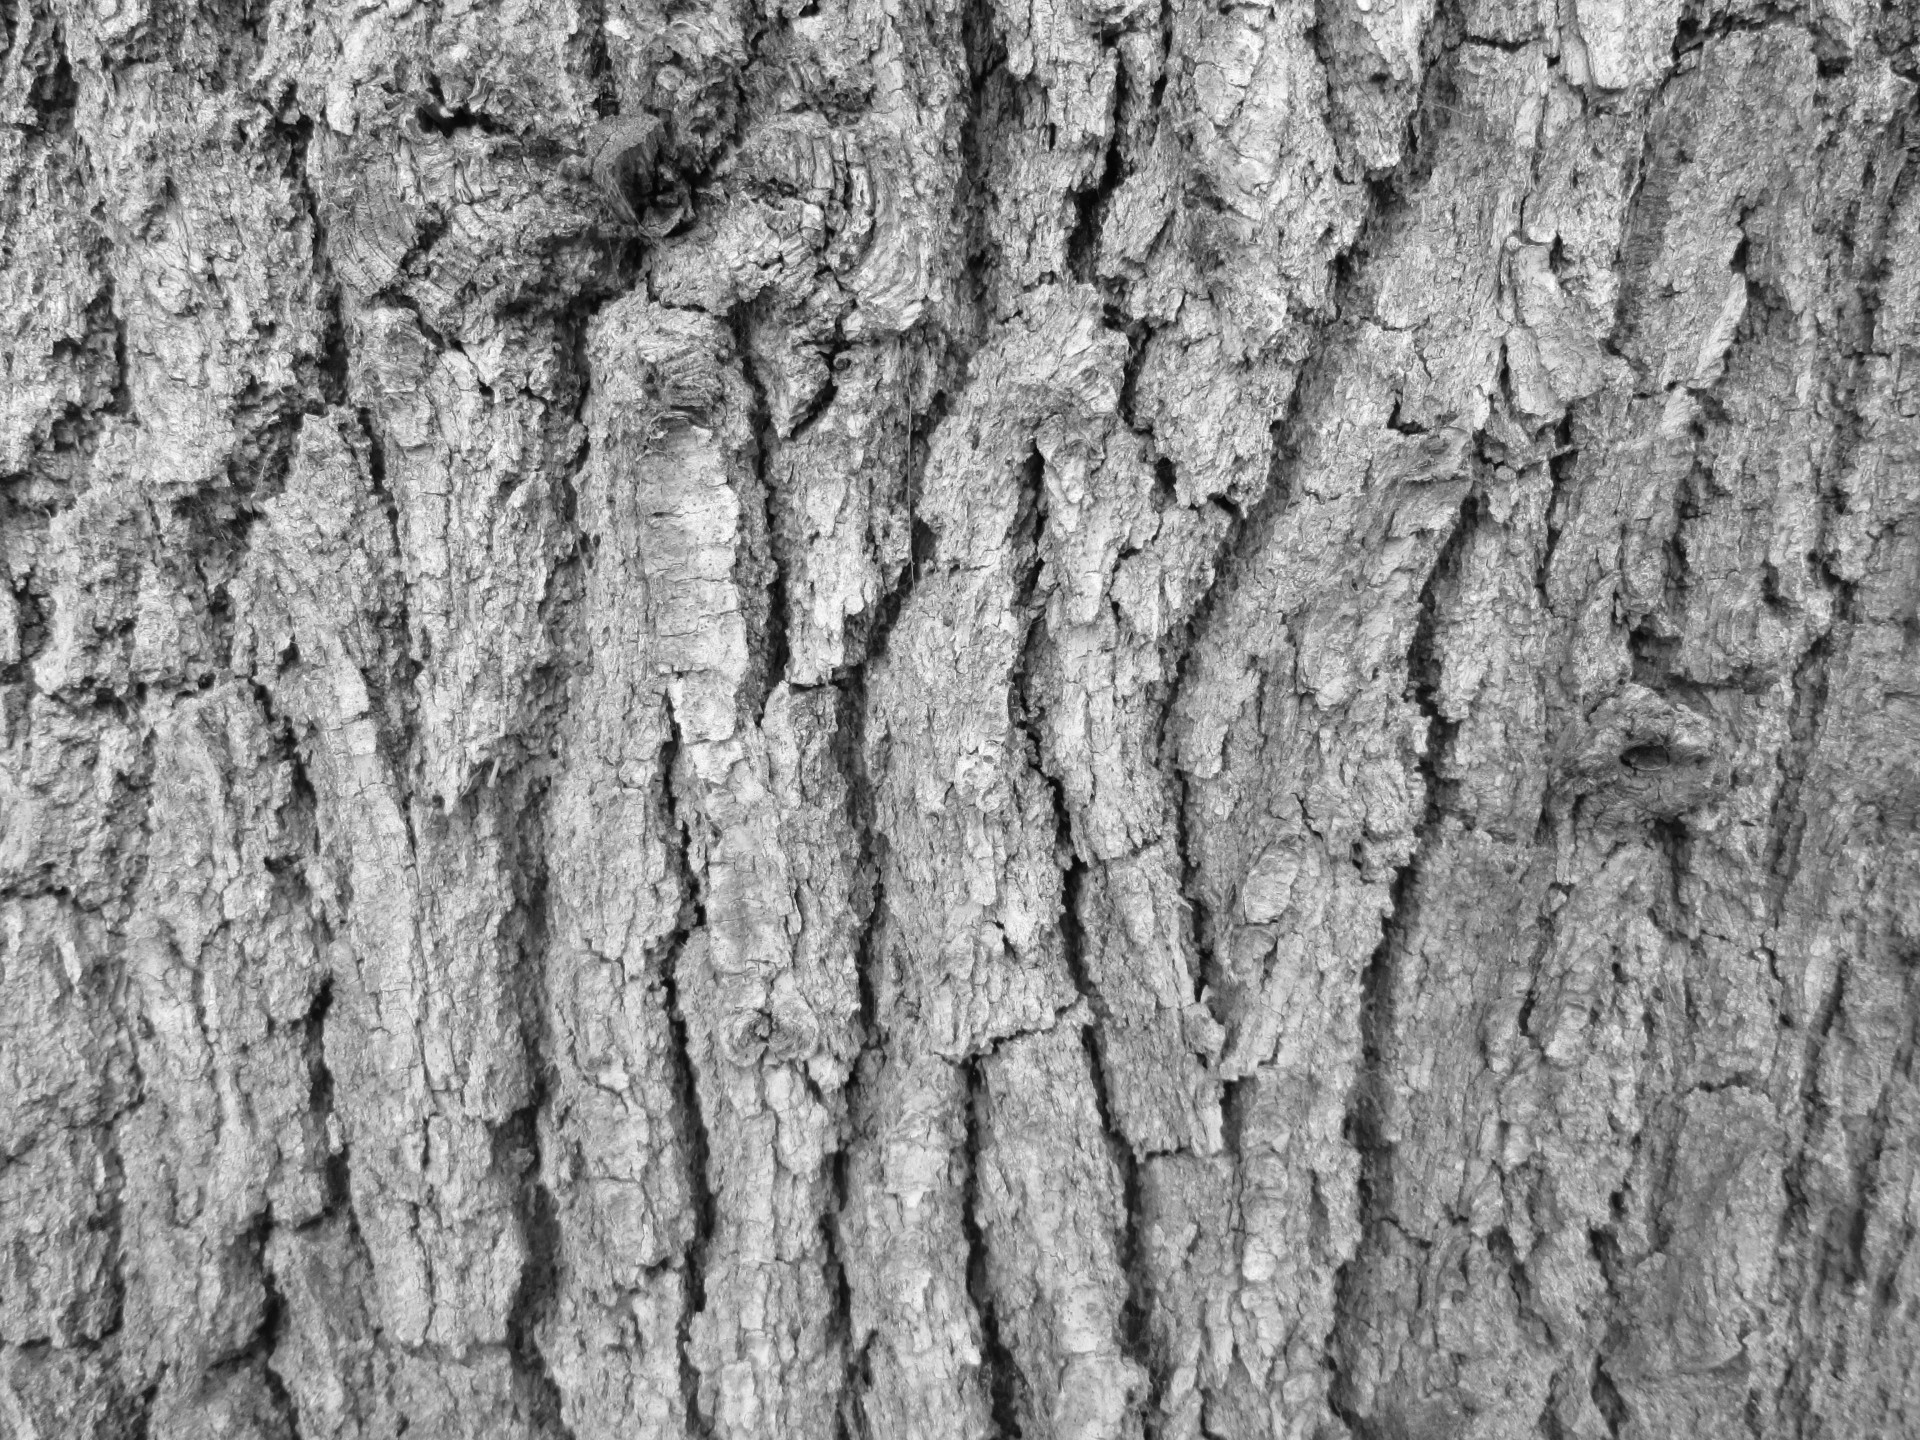 Tree Bark Texture 14 Free Stock Photo - Public Domain Pictures